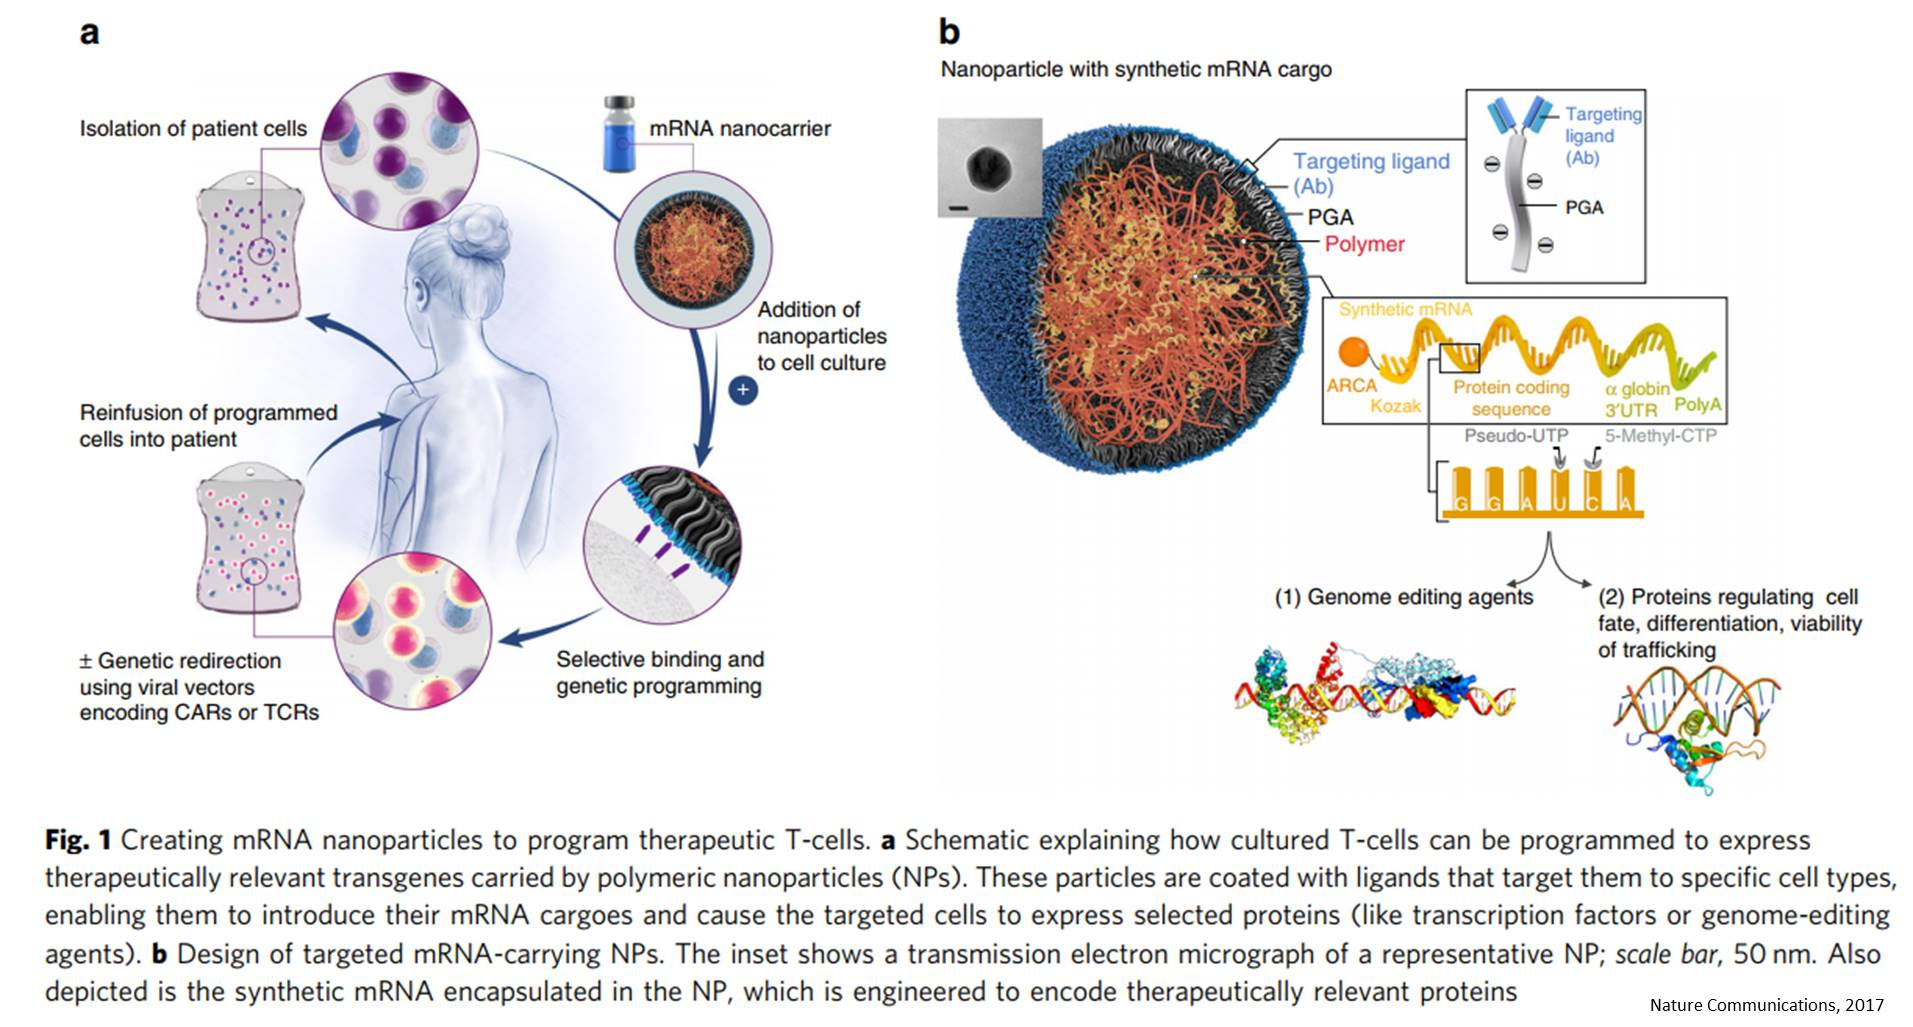 Delivering mRNA directly to the cells using nanoparticles